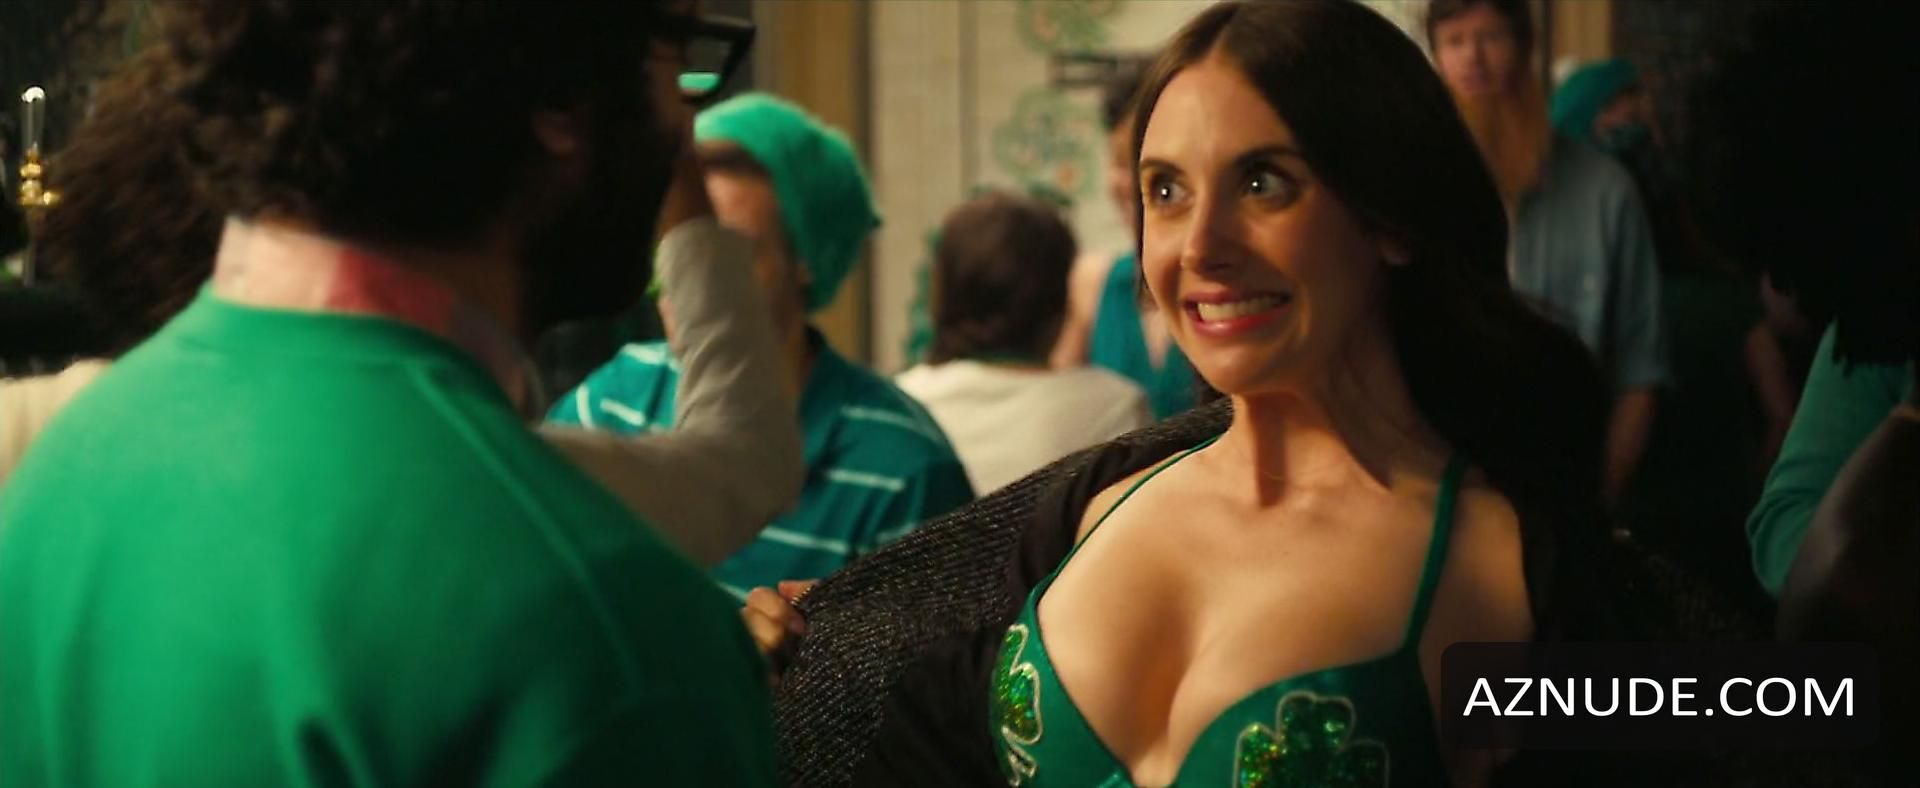 Alison brie community 02 - 1 part 1